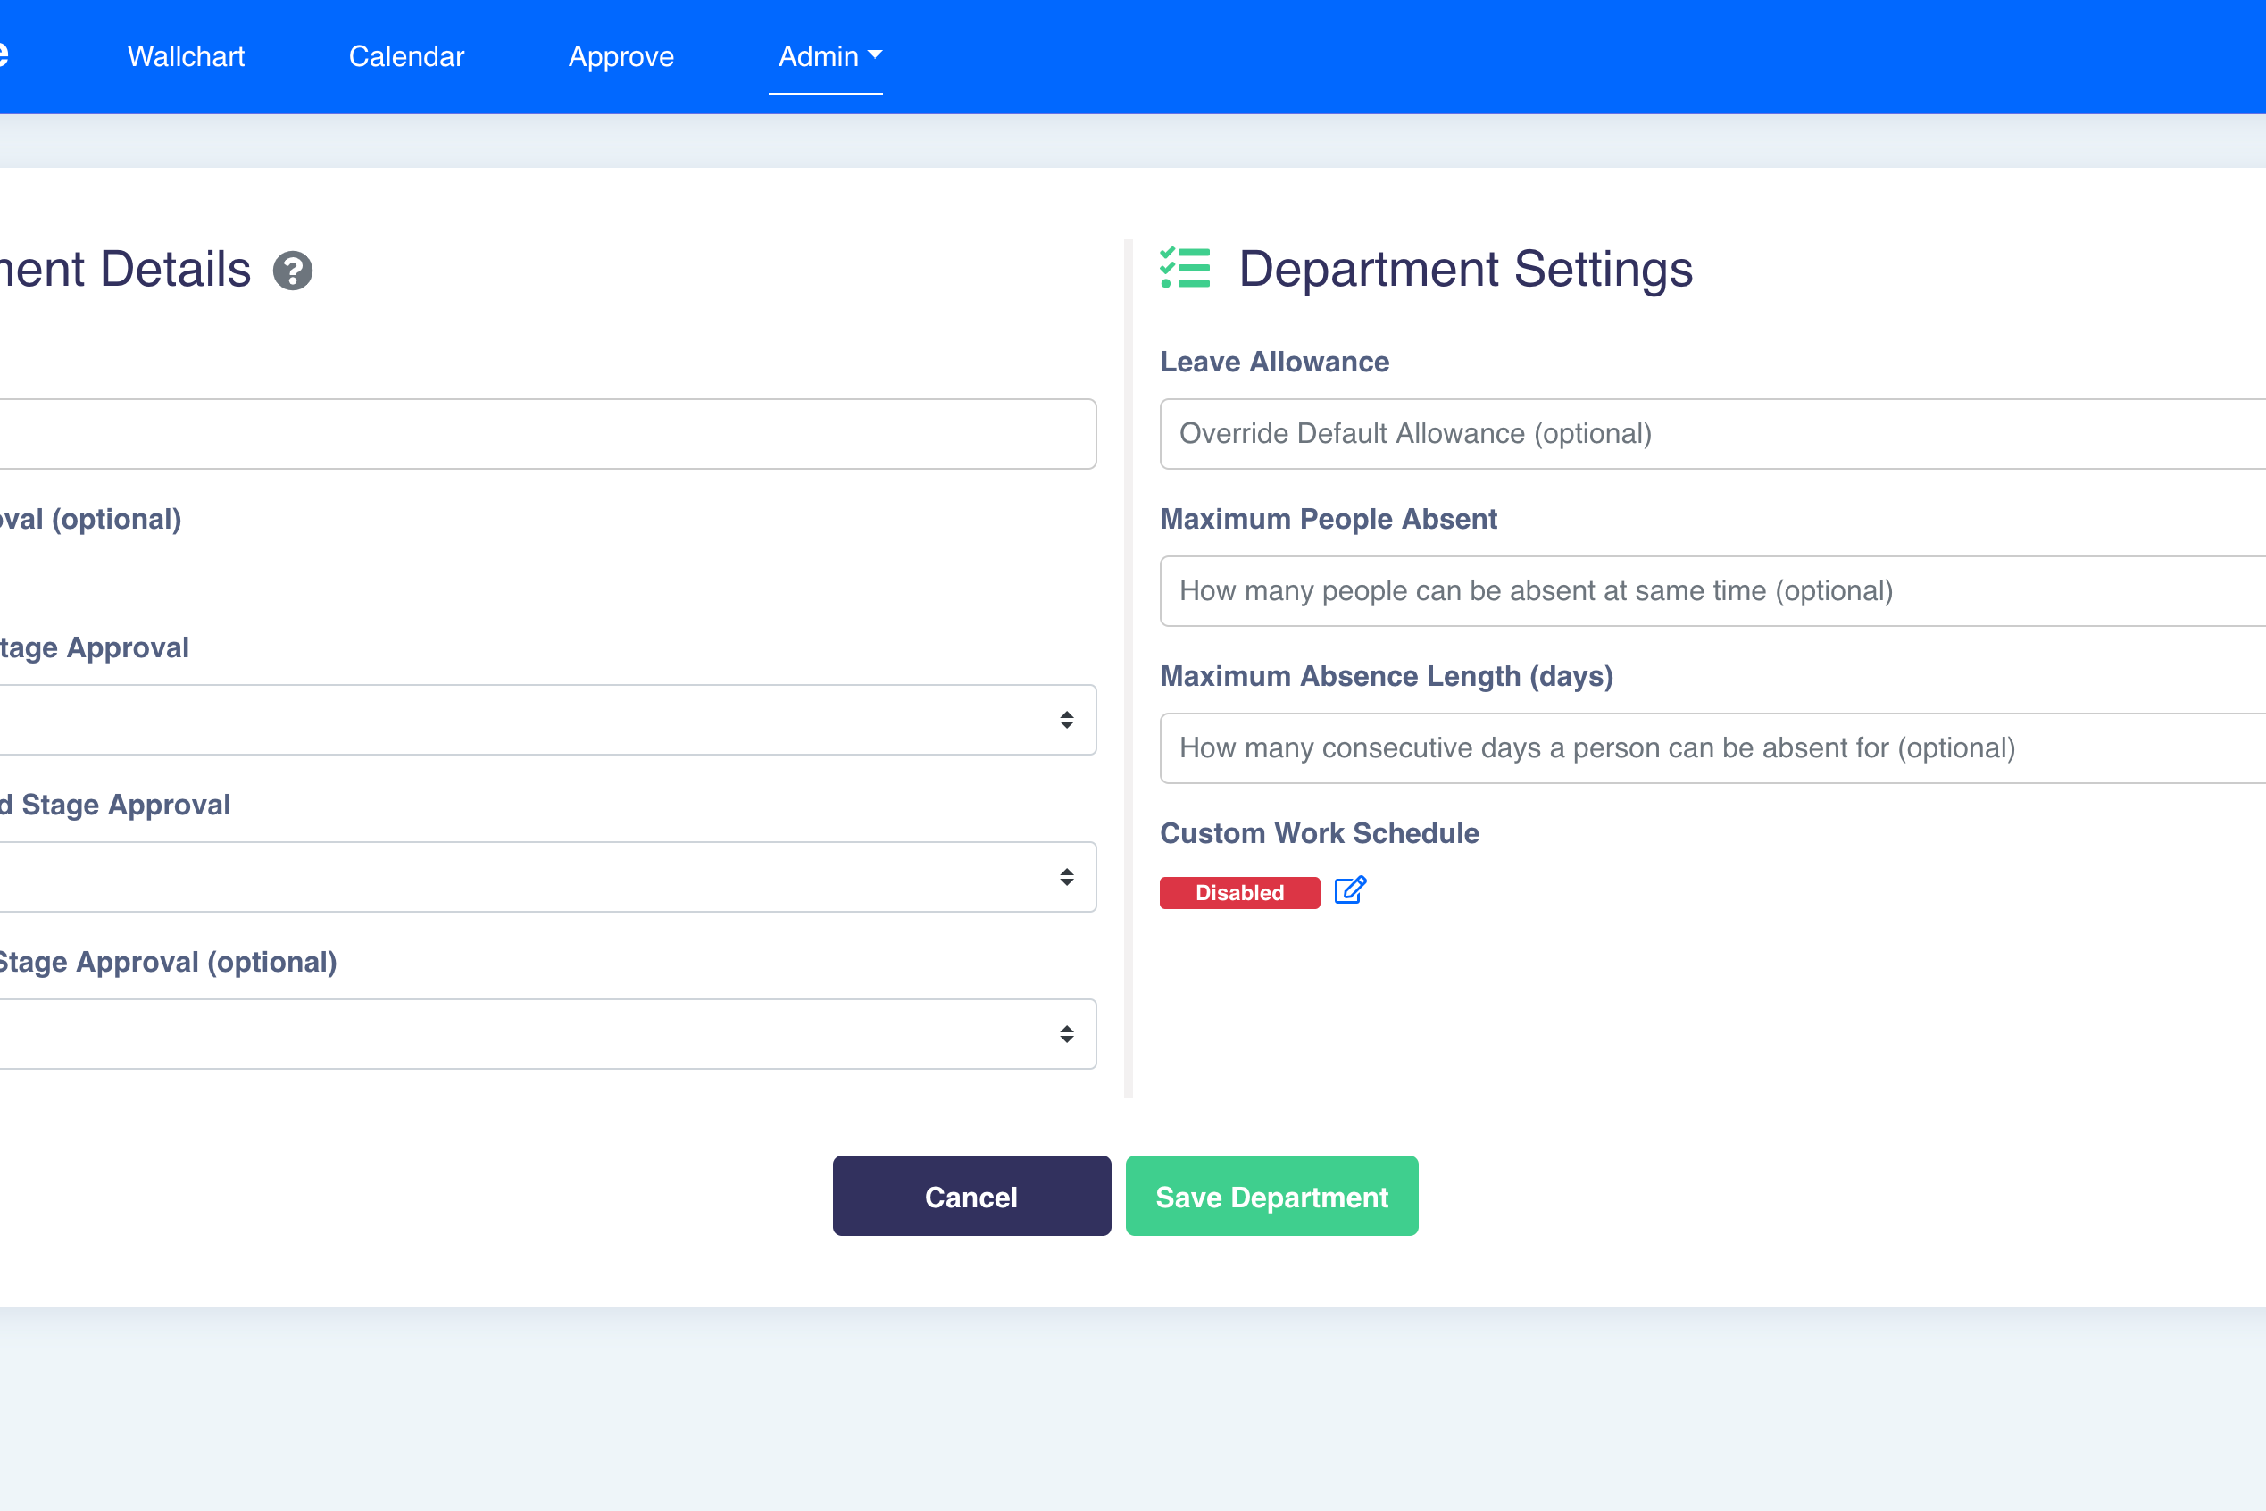 ScheduleLeave - Multi-stage approval